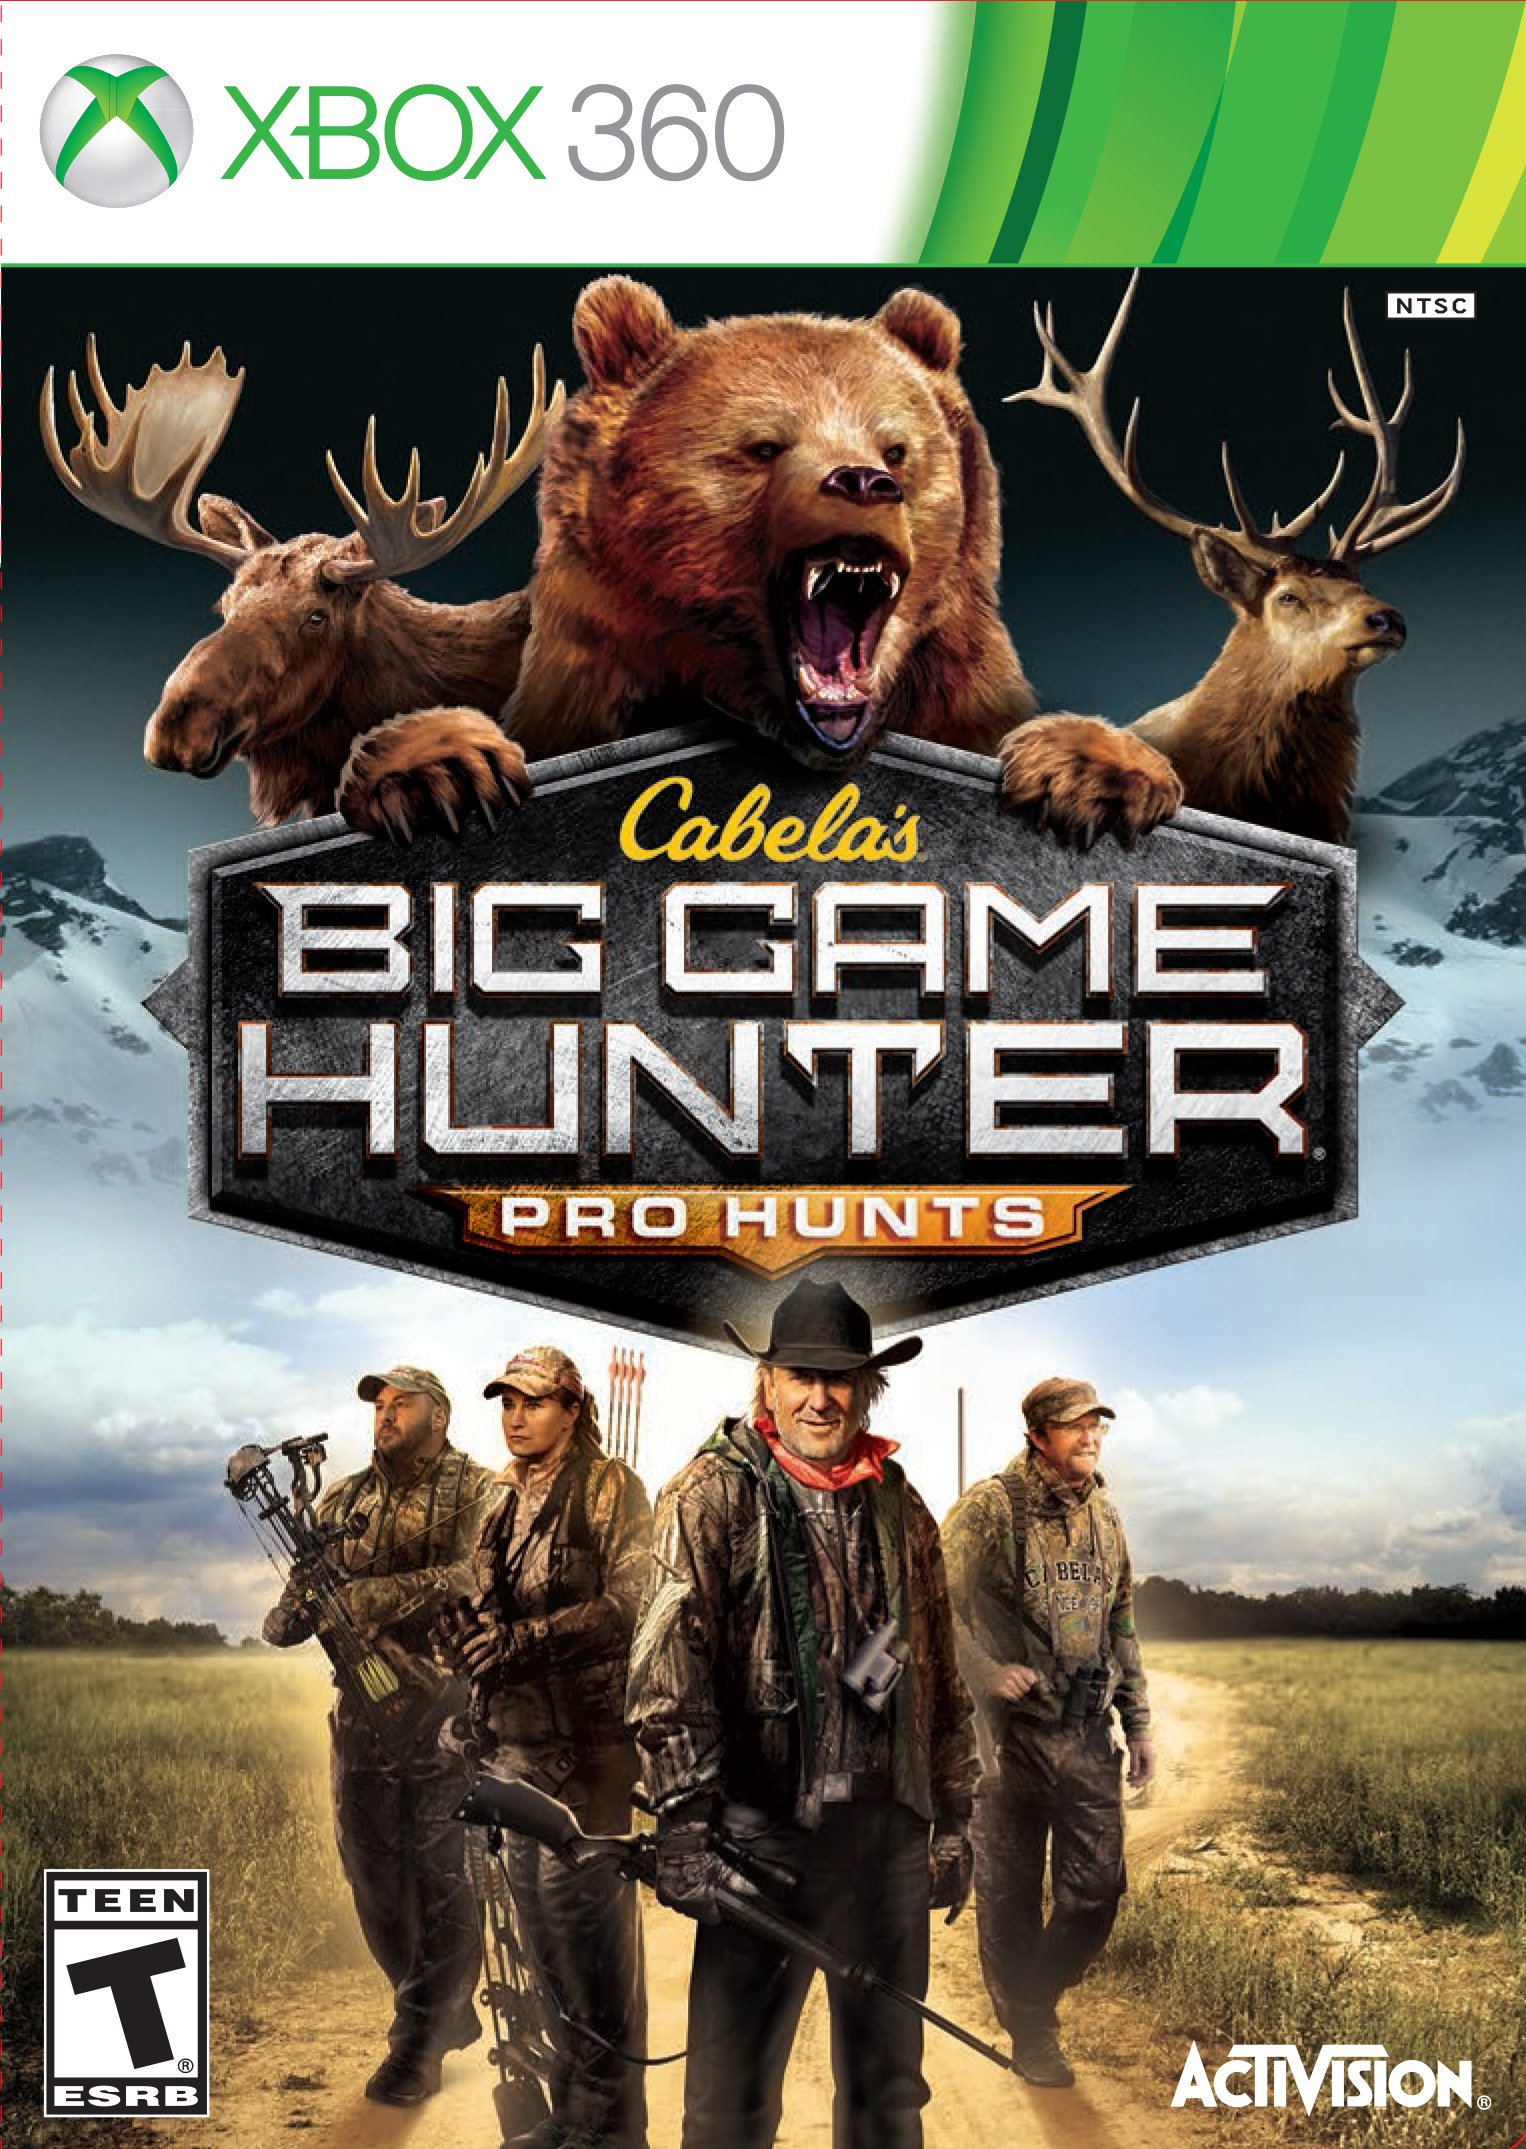 cabelas big game hunter pro hunts xbox 360 release date march 25 2014